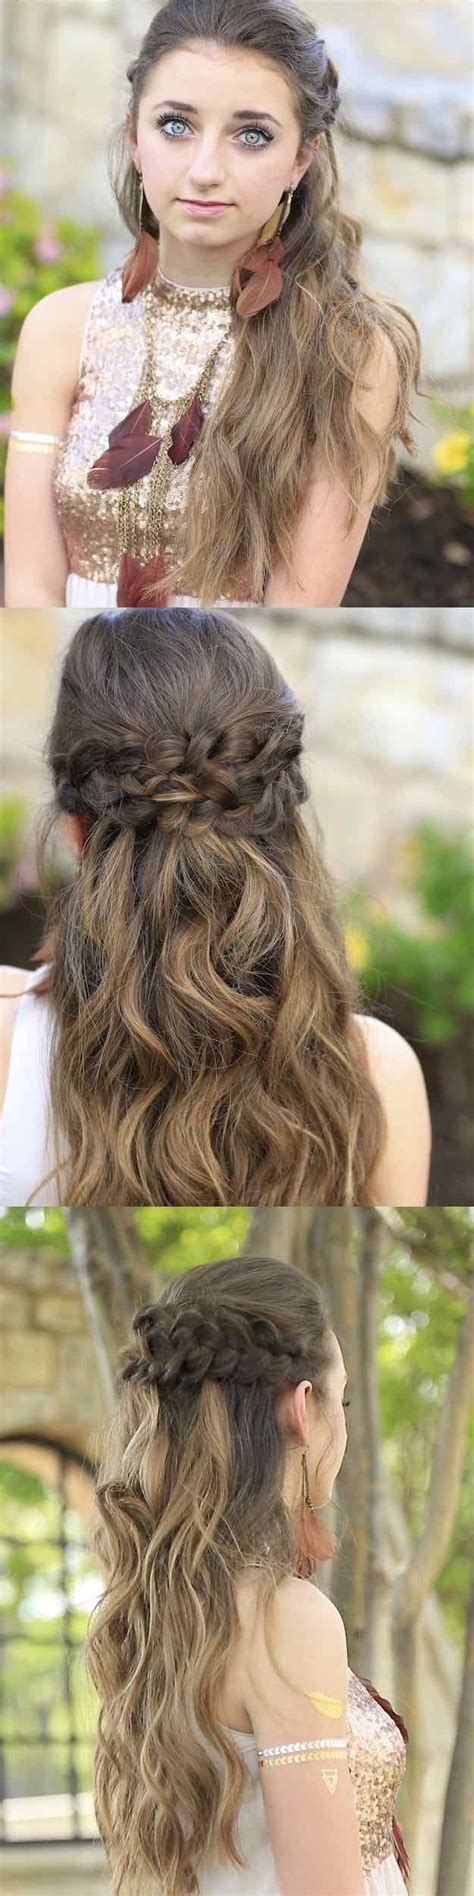 Half Up Half Prom Hairstyles by 25 Easy Half Up Half Hairstyle Tutorials For Prom